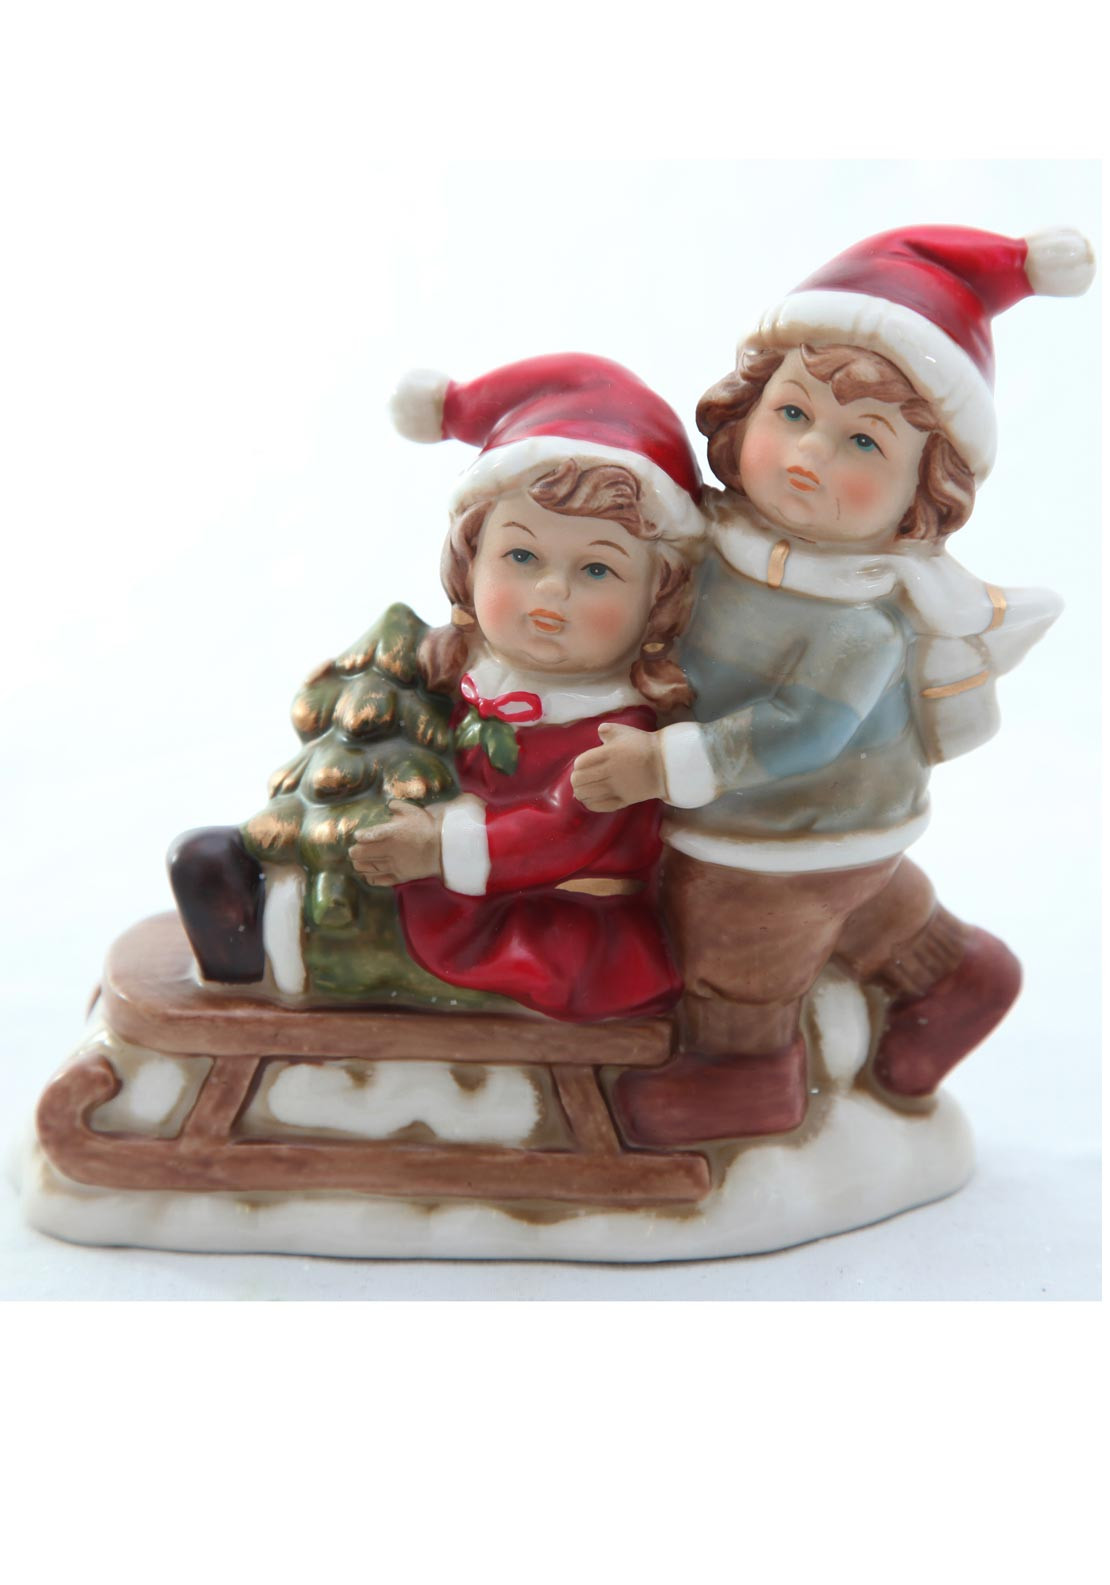 Verano Christmas Children and Sleigh Ornament